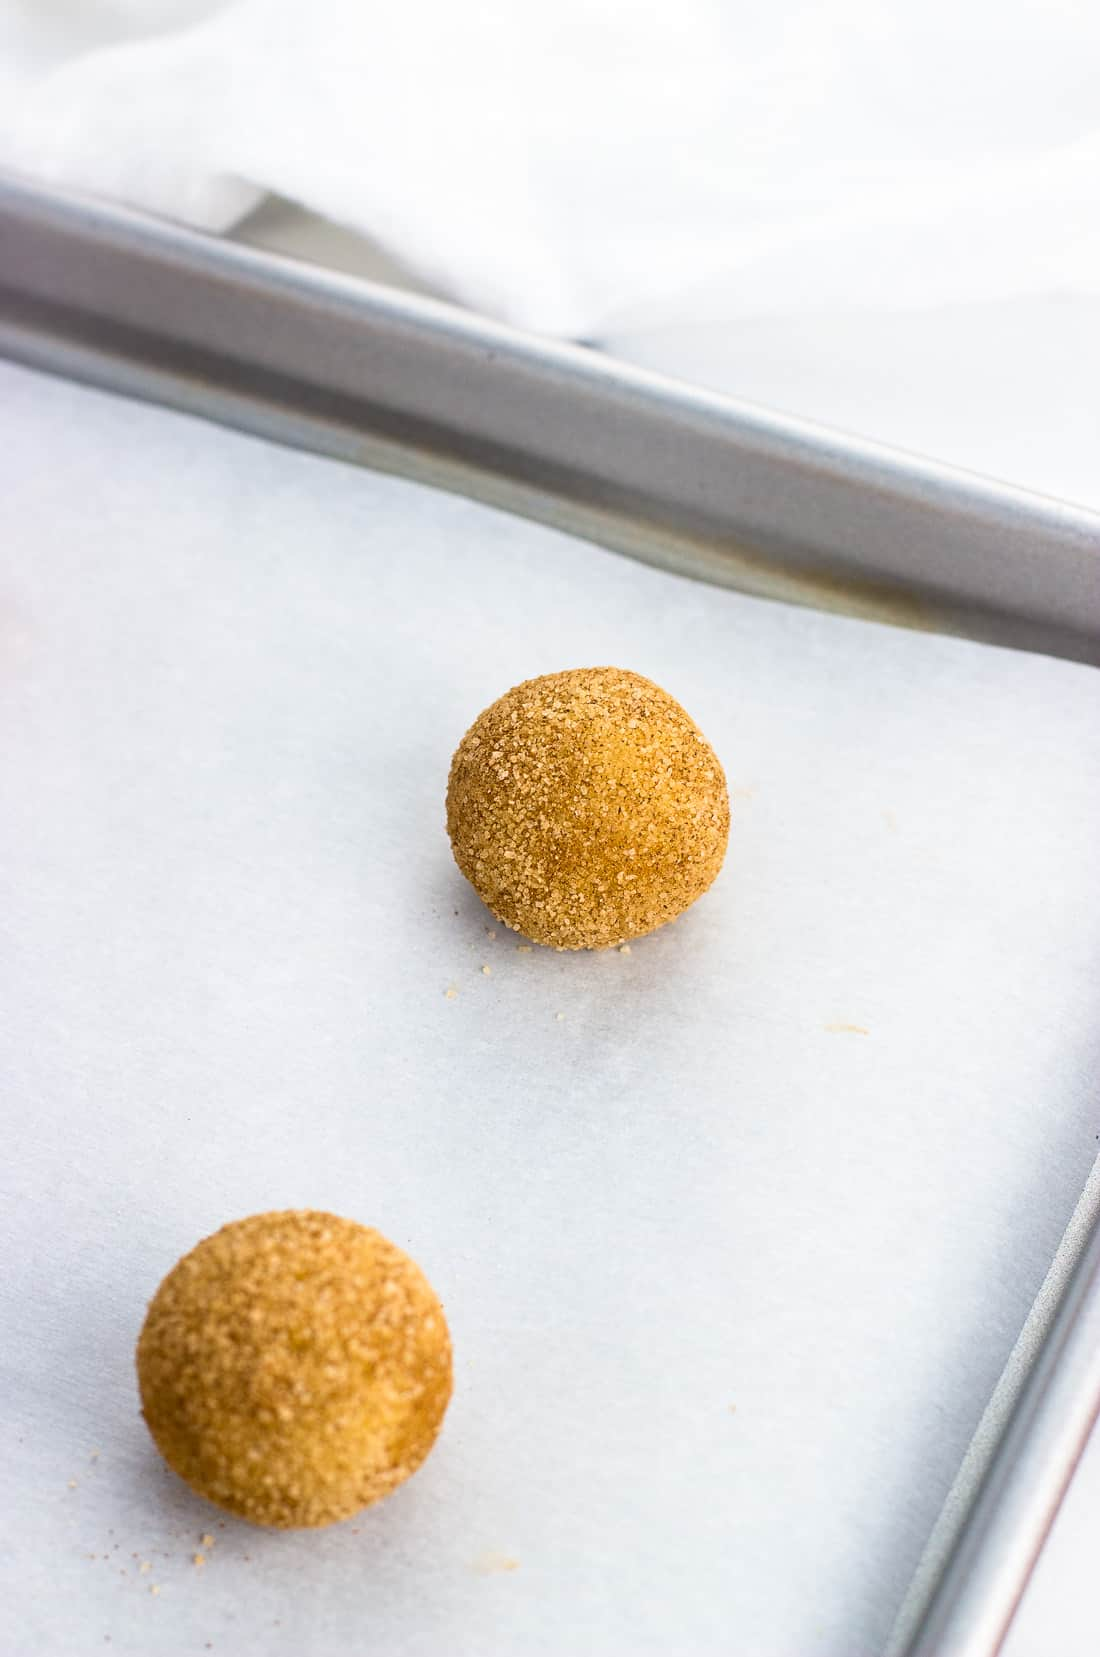 A ball of snickerdoodle dough rolled in cinnamon sugar and placed on a parchment-lined baking sheet, pre-bake